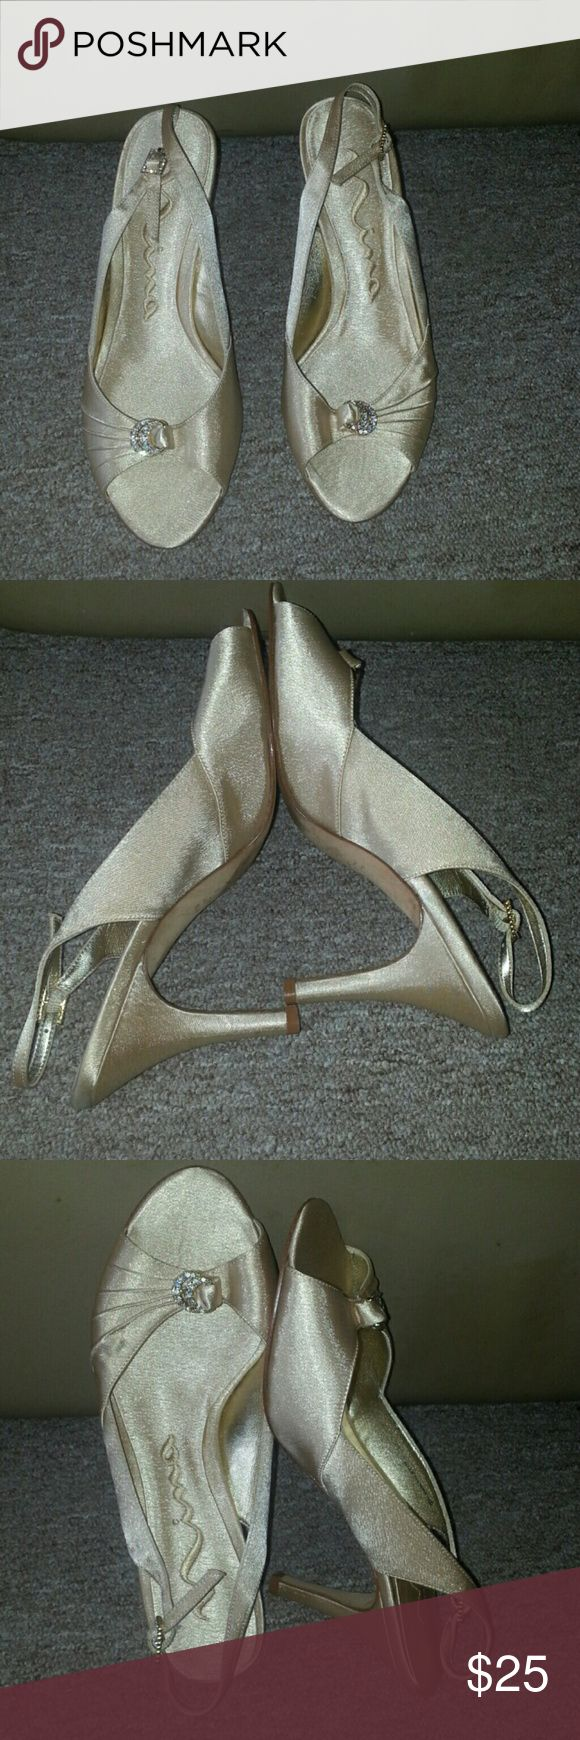 Gold Nina shoes size 7.5 excellent condition Gold size 7.5 Nina shoes great for weddings excellent condition Nina Shoes Shoes Sandals